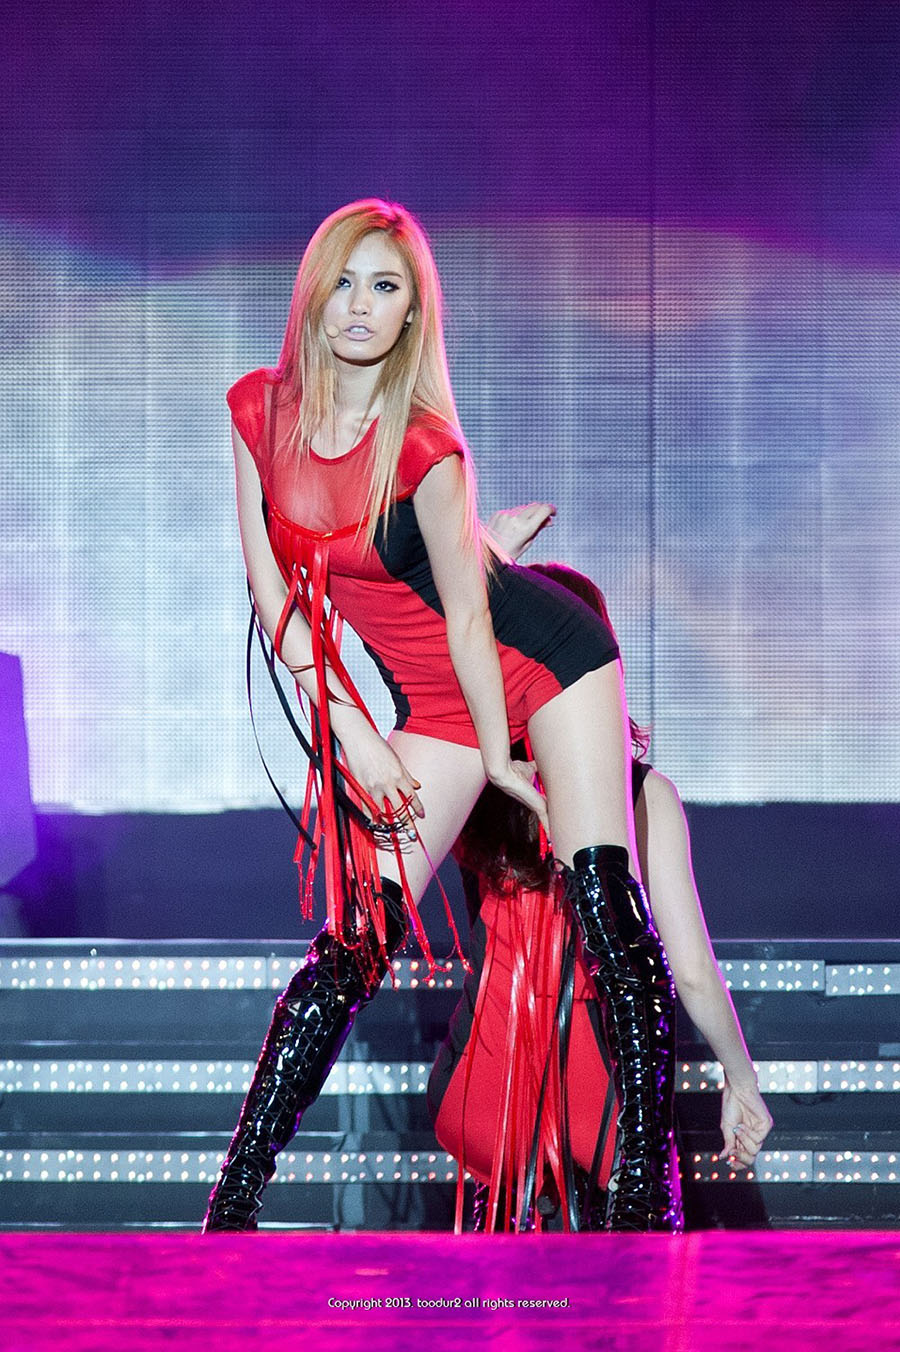 nana-hot-red-outfit